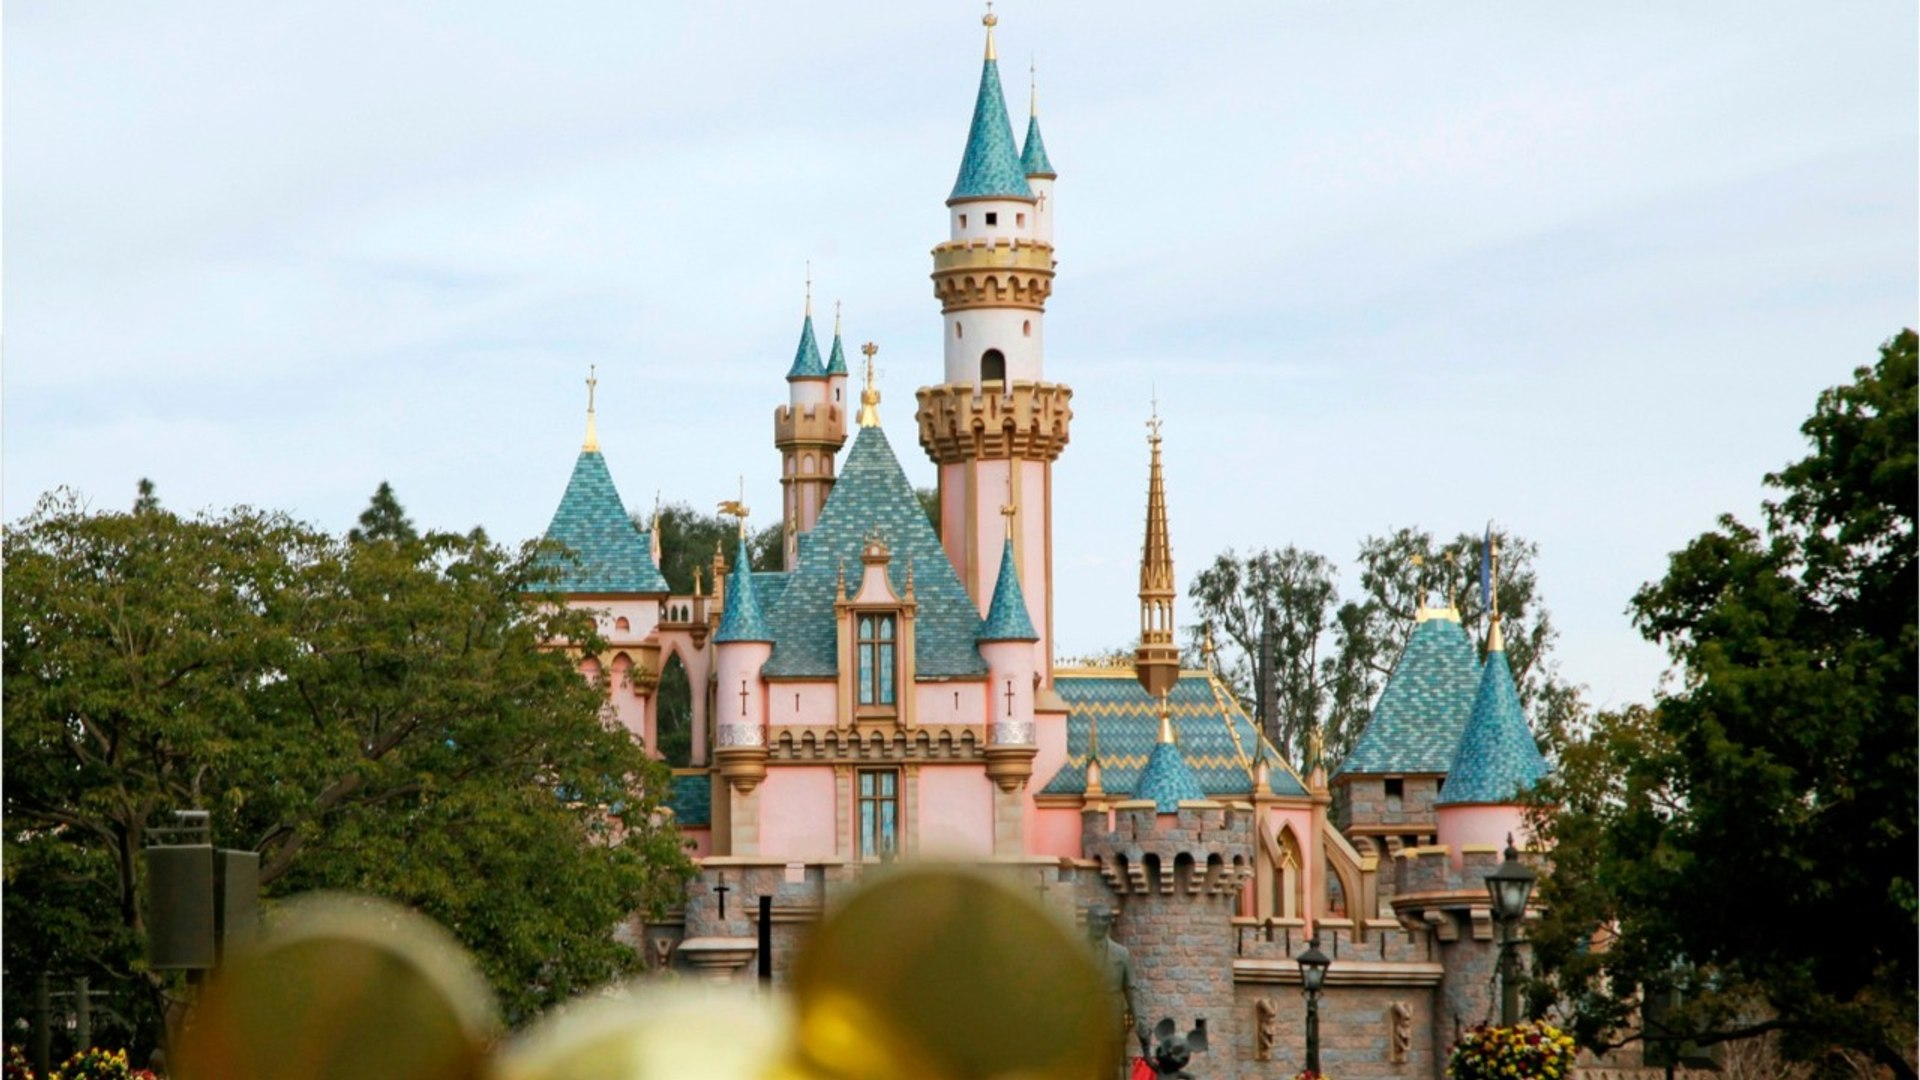 Disneyland Resort Proposes To Raise Minimum Wage For California Park Workers